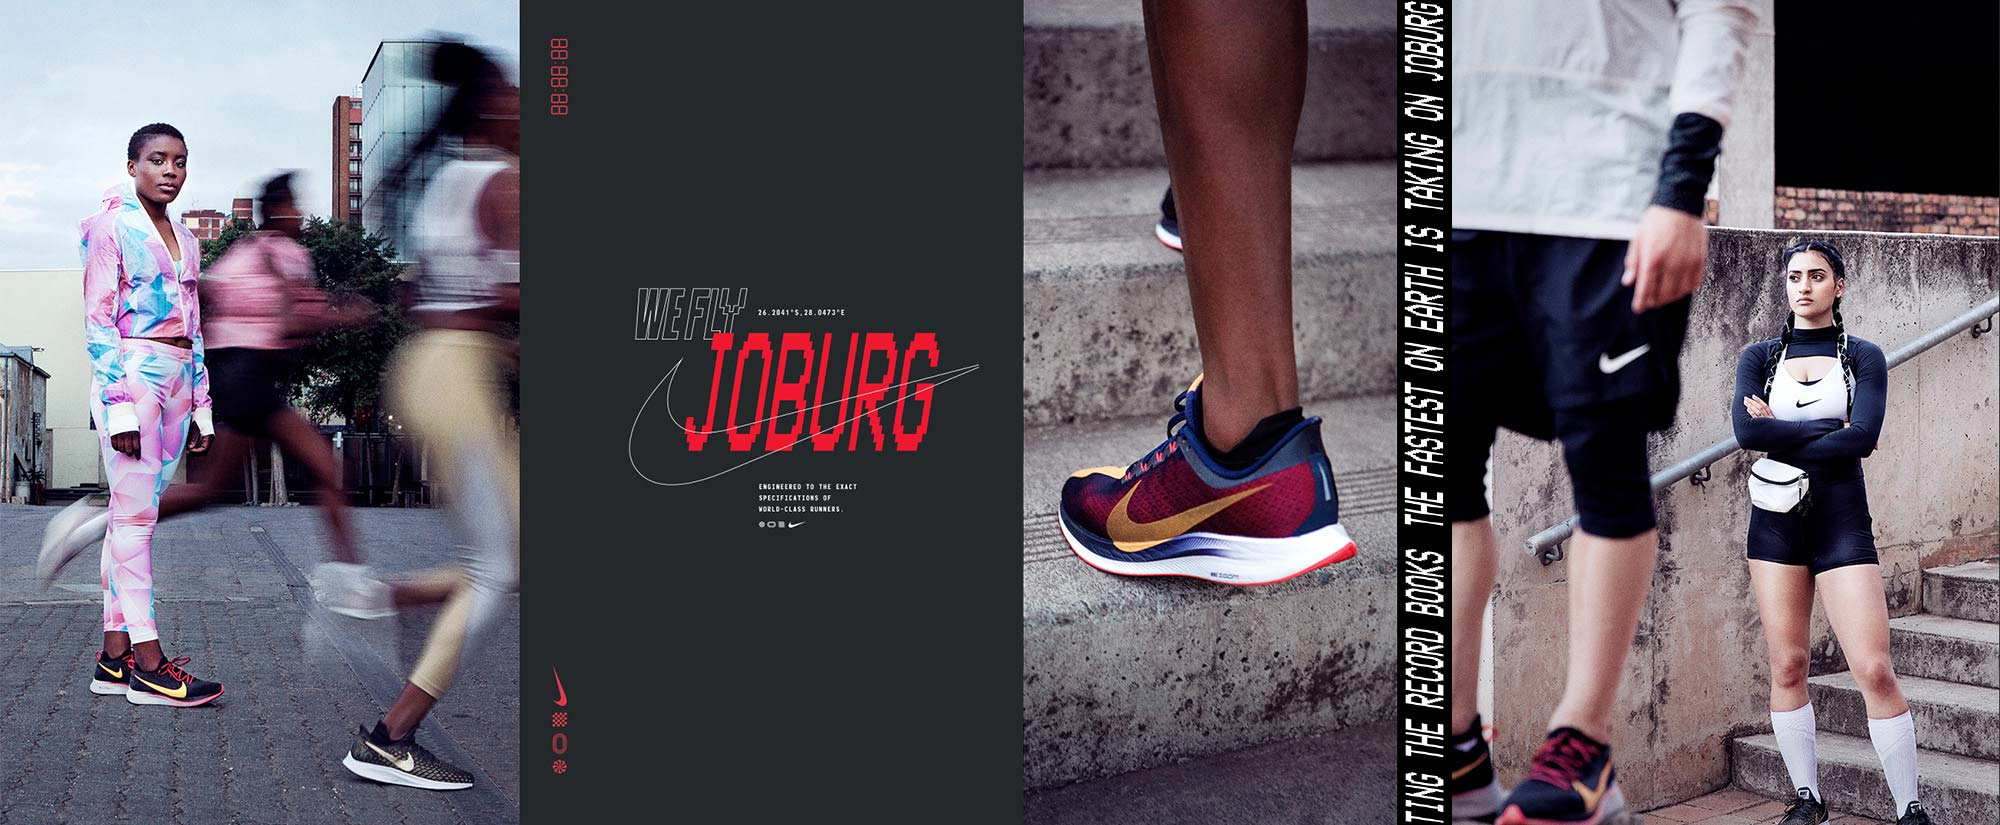 Nike WeFly design with images of models and athletes